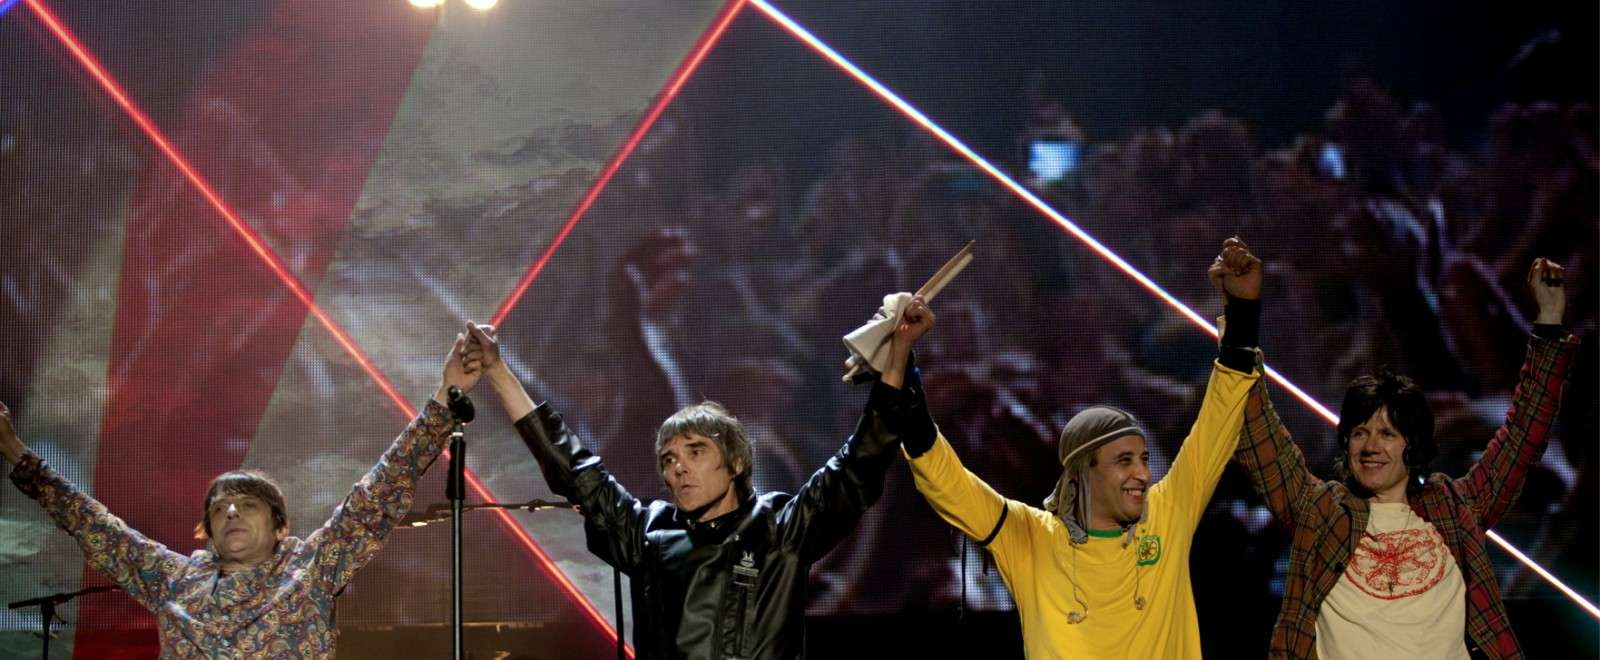 THE STONE ROSES: MADE OF STONE  trailer